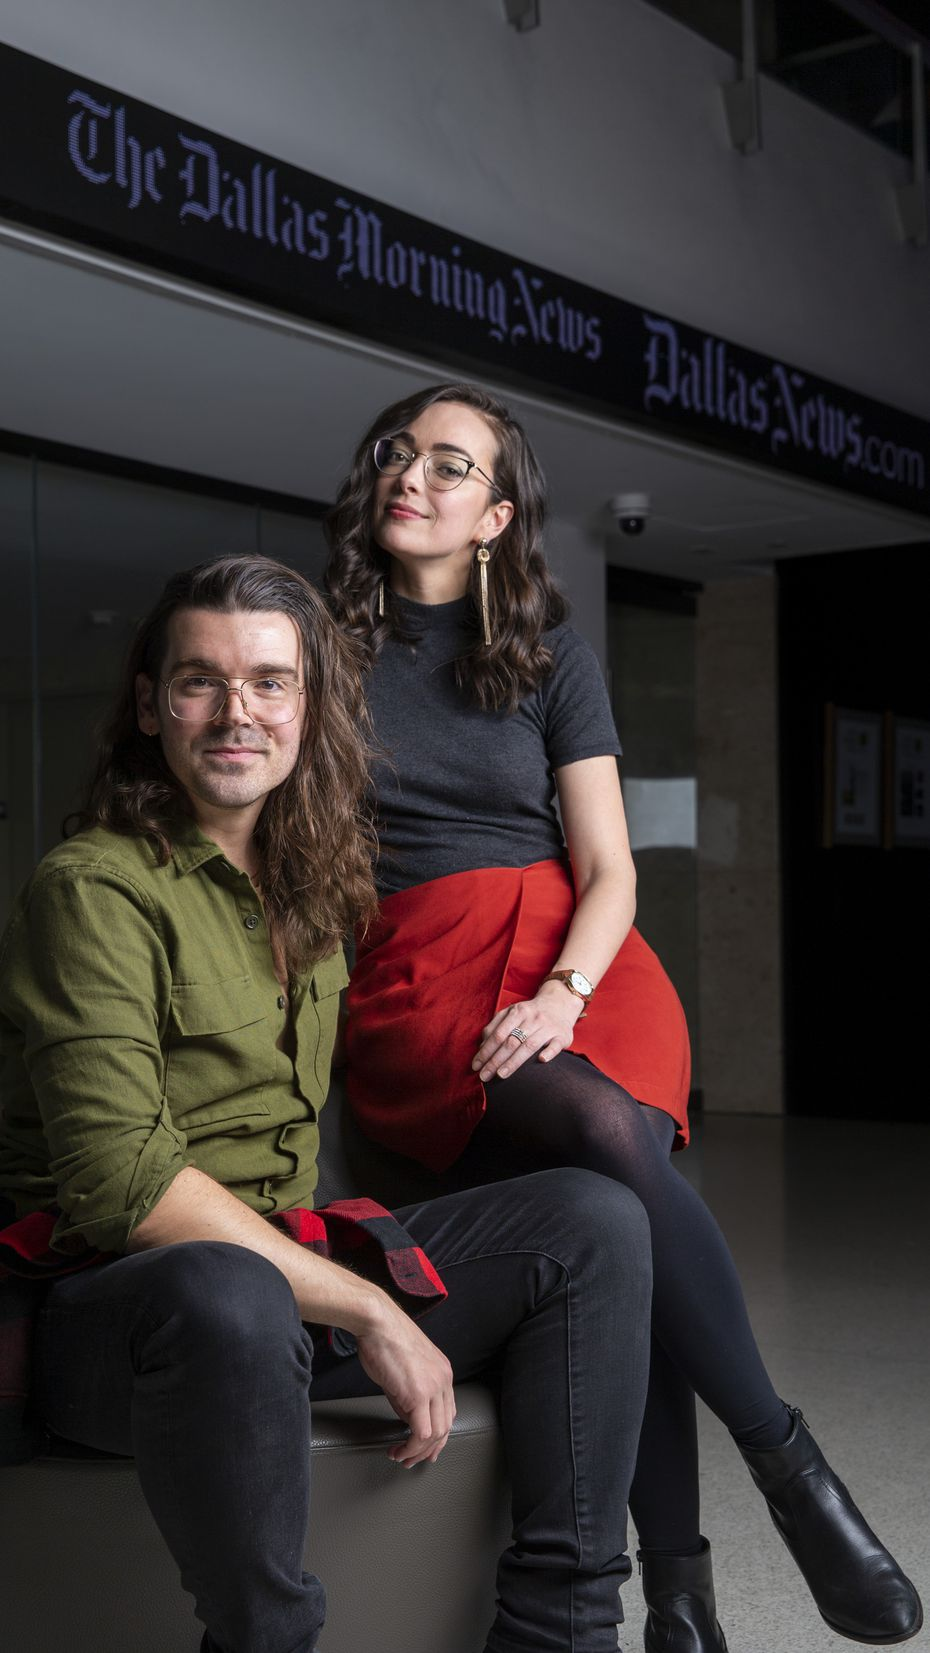 Brigham Mosley, left, and Janielle Kastner wrote 'Playwrights in the Newsroom' after interviewing and shadowing journalists at The Dallas Morning News for two years to gauge the state of American journalism.